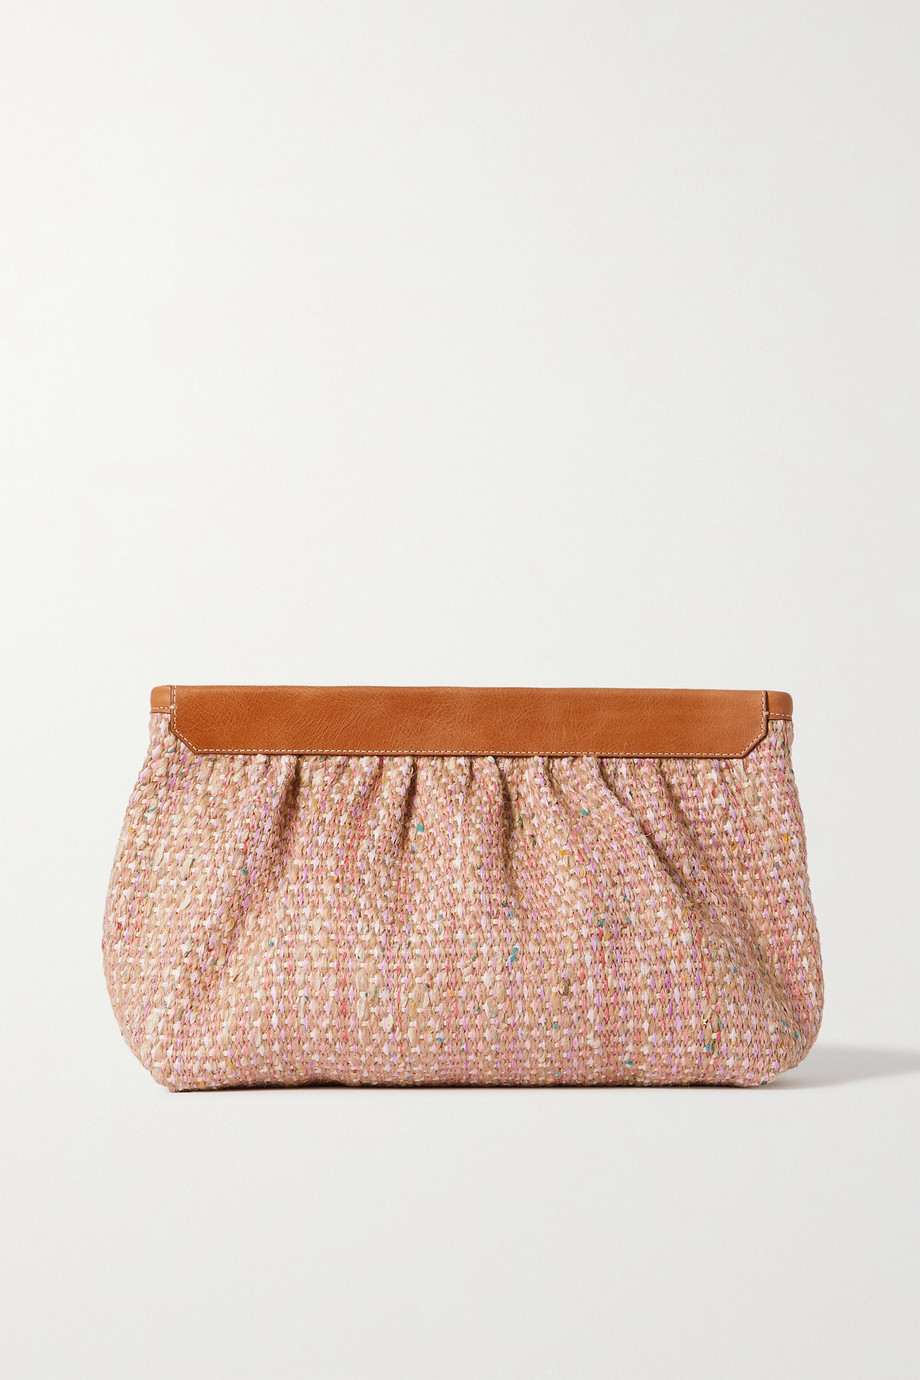 Isabel Marant Pochette en tweed à finitions en cuir Luz